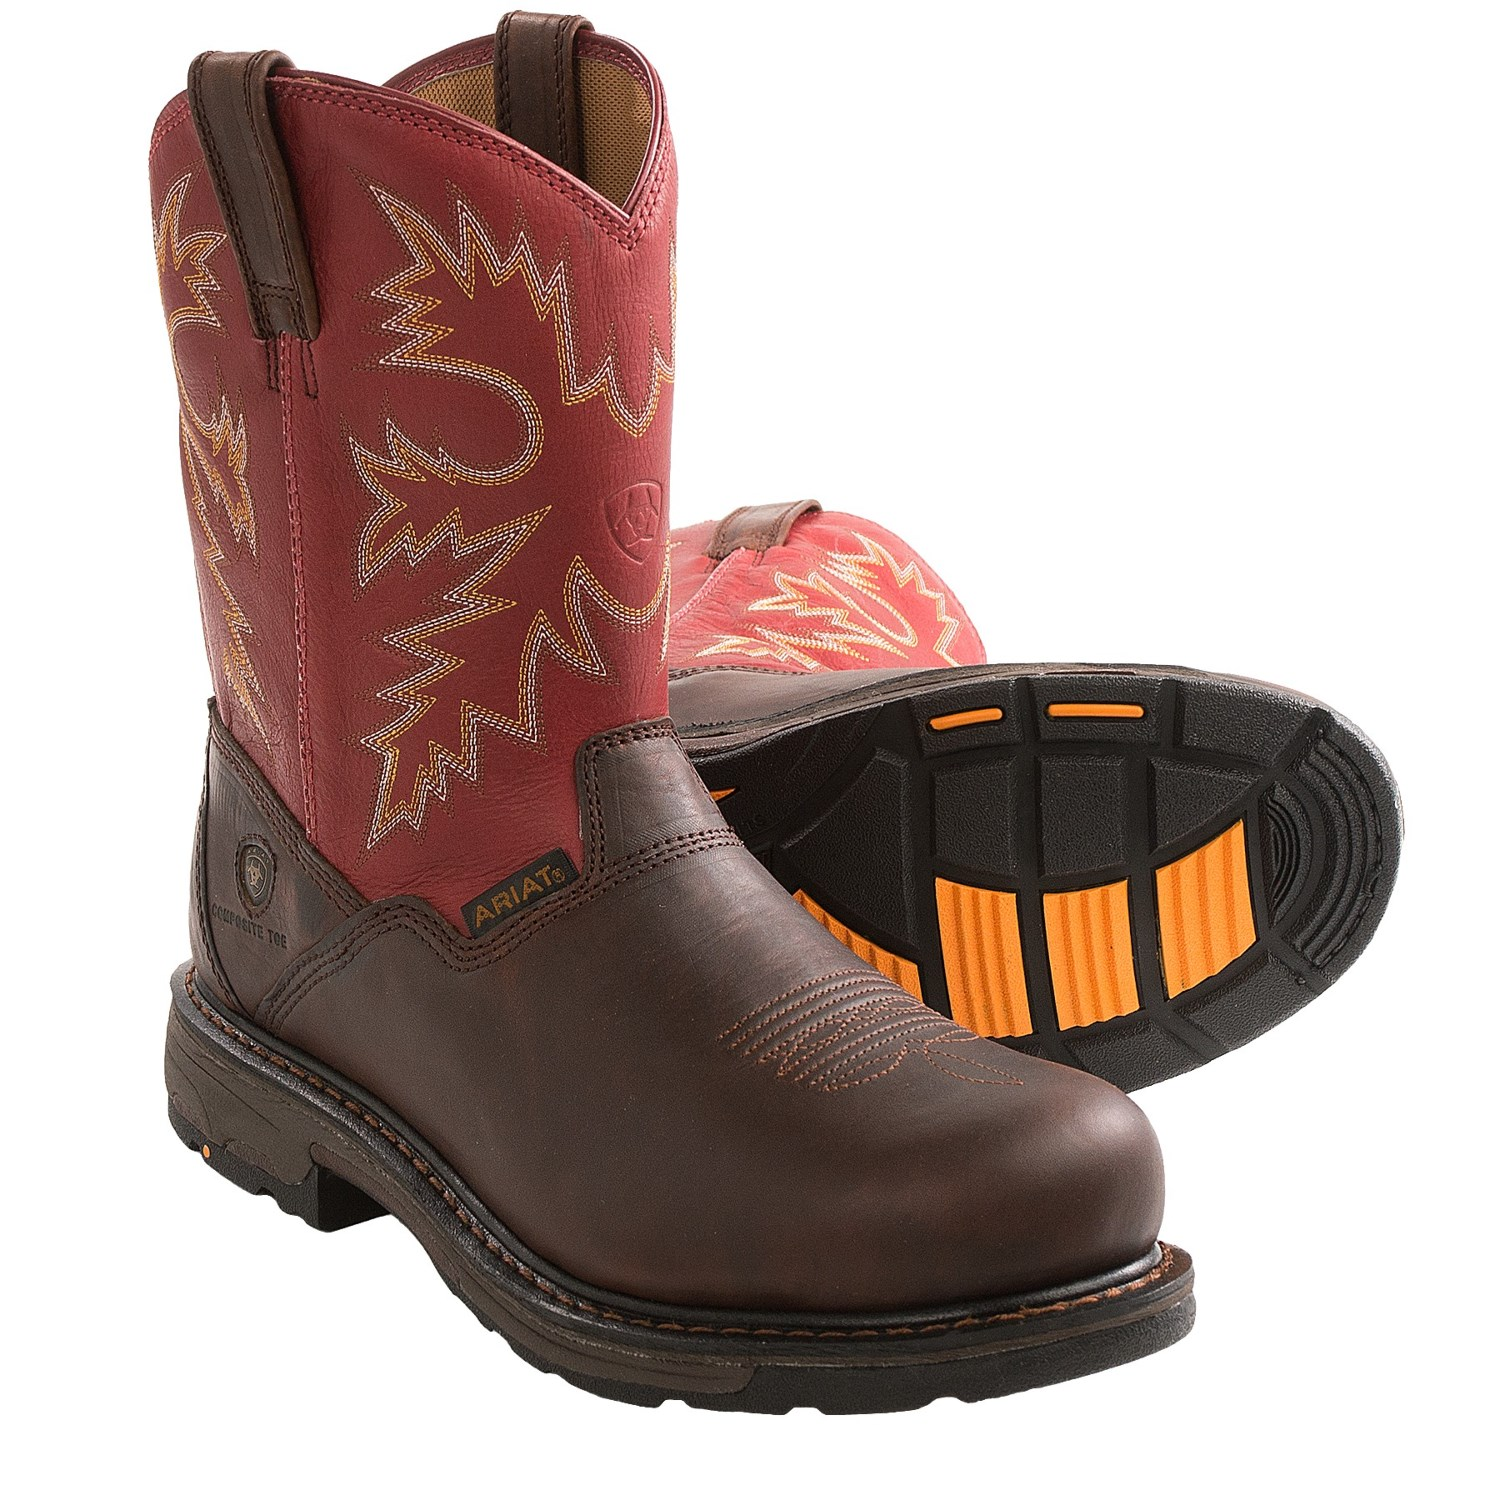 Ariat Tracker Winter Boots Review | Homewood Mountain Ski Resort